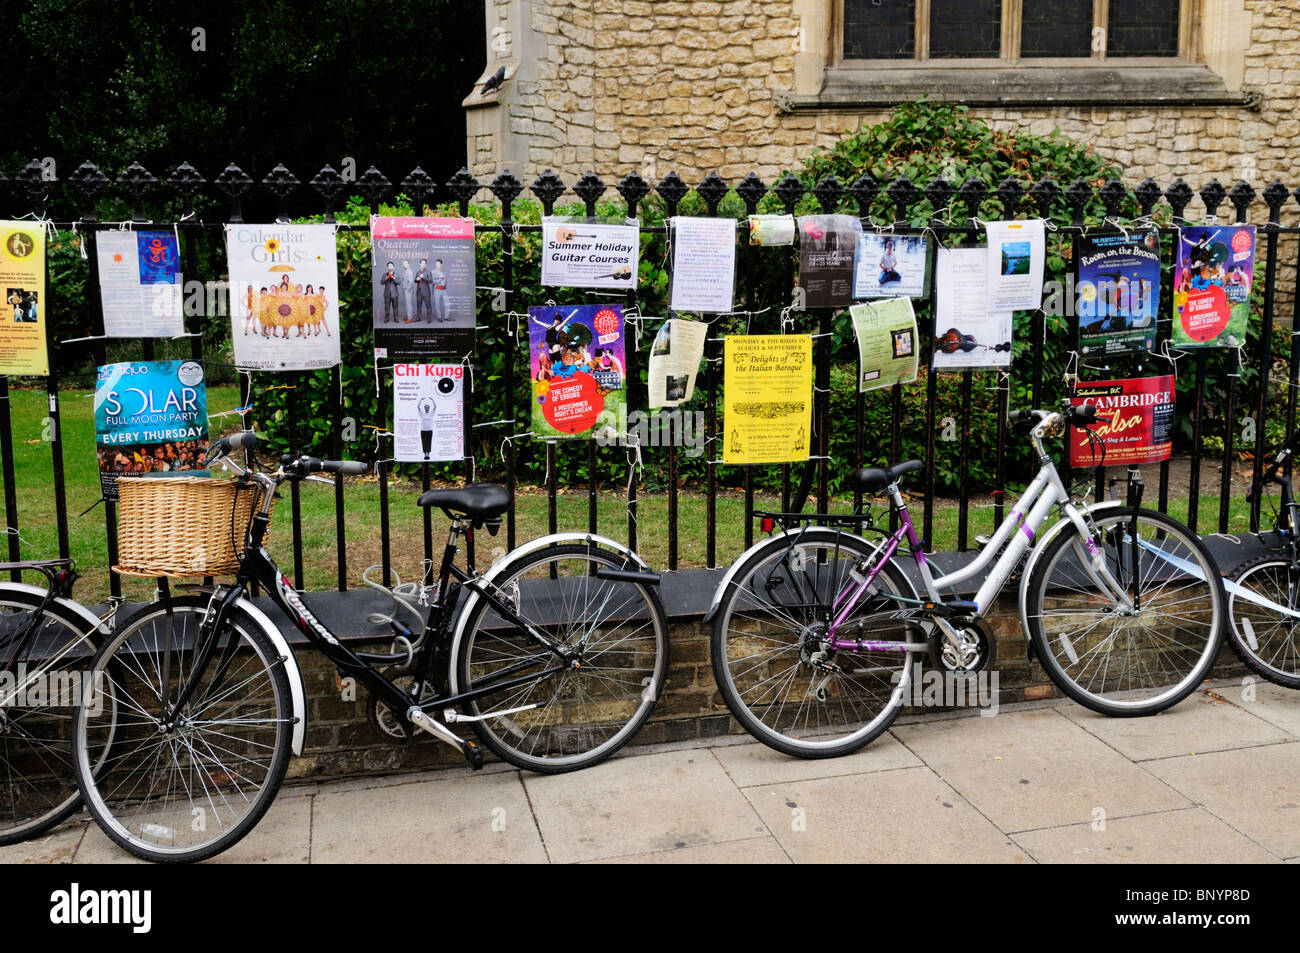 Bicycles and Posters outside Great St Mary's Church, Cambridge, England, UK - Stock Image